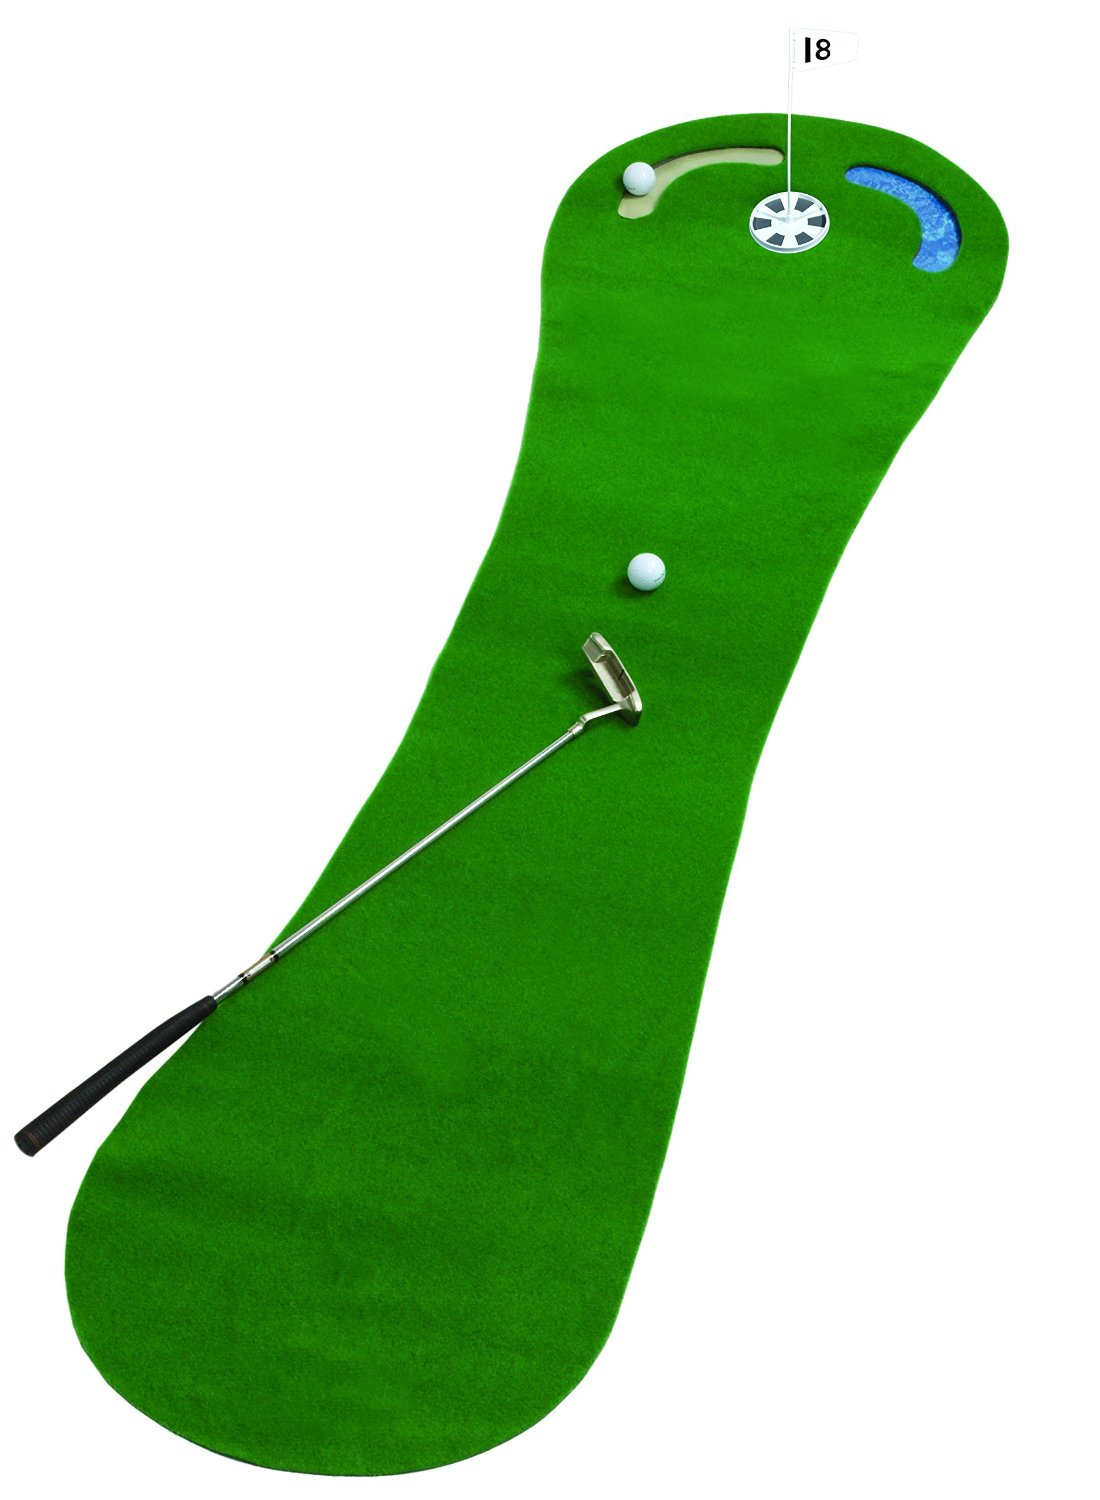 JEF World of Golf Par Practice Putting Mats